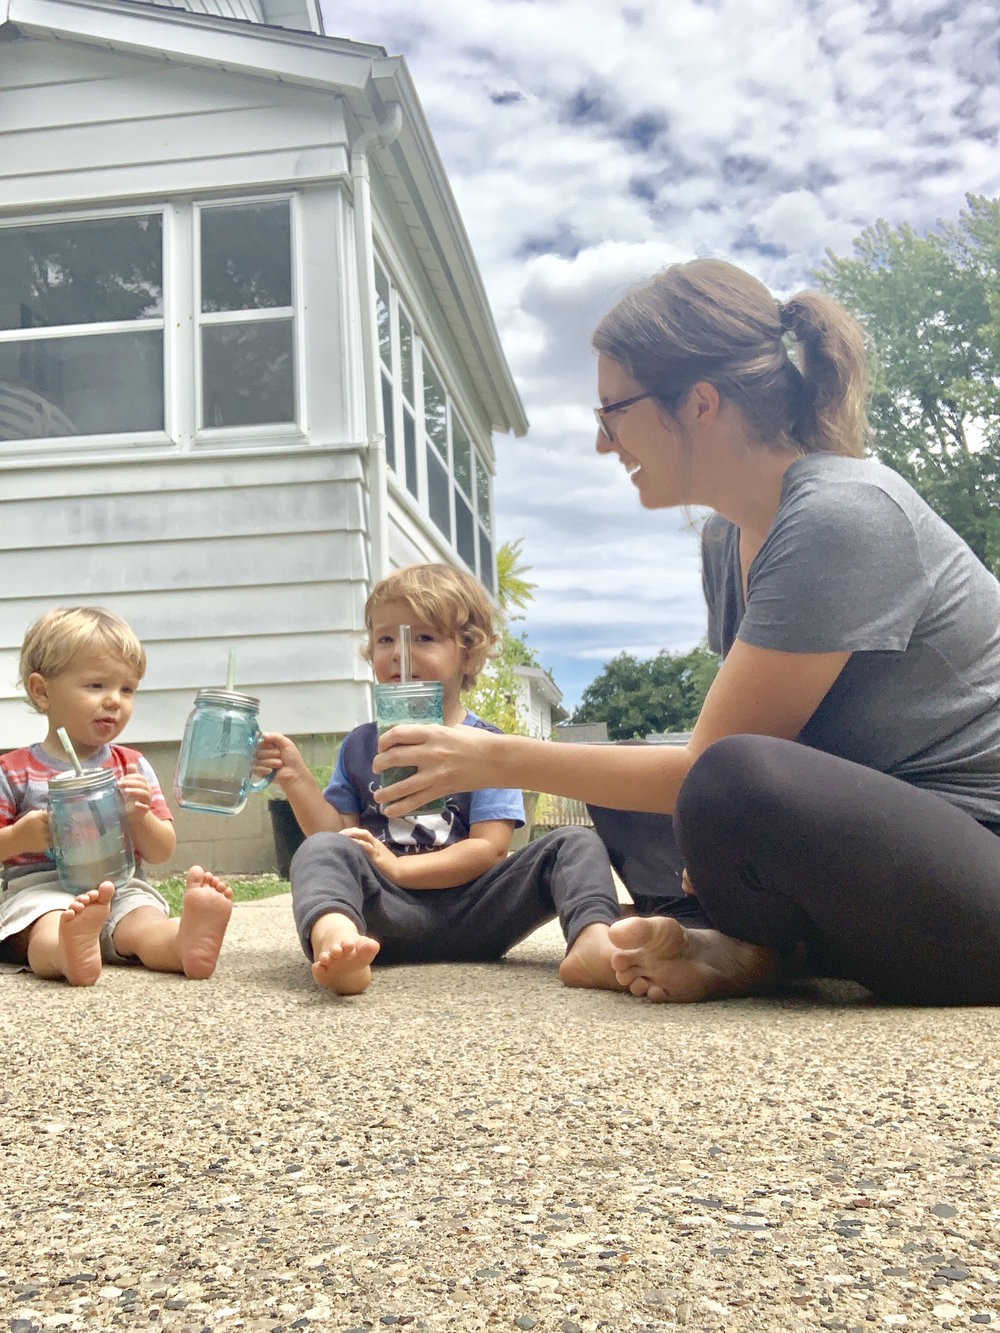 mom and two toddler boys sitting outside drinking shakes in teal cups